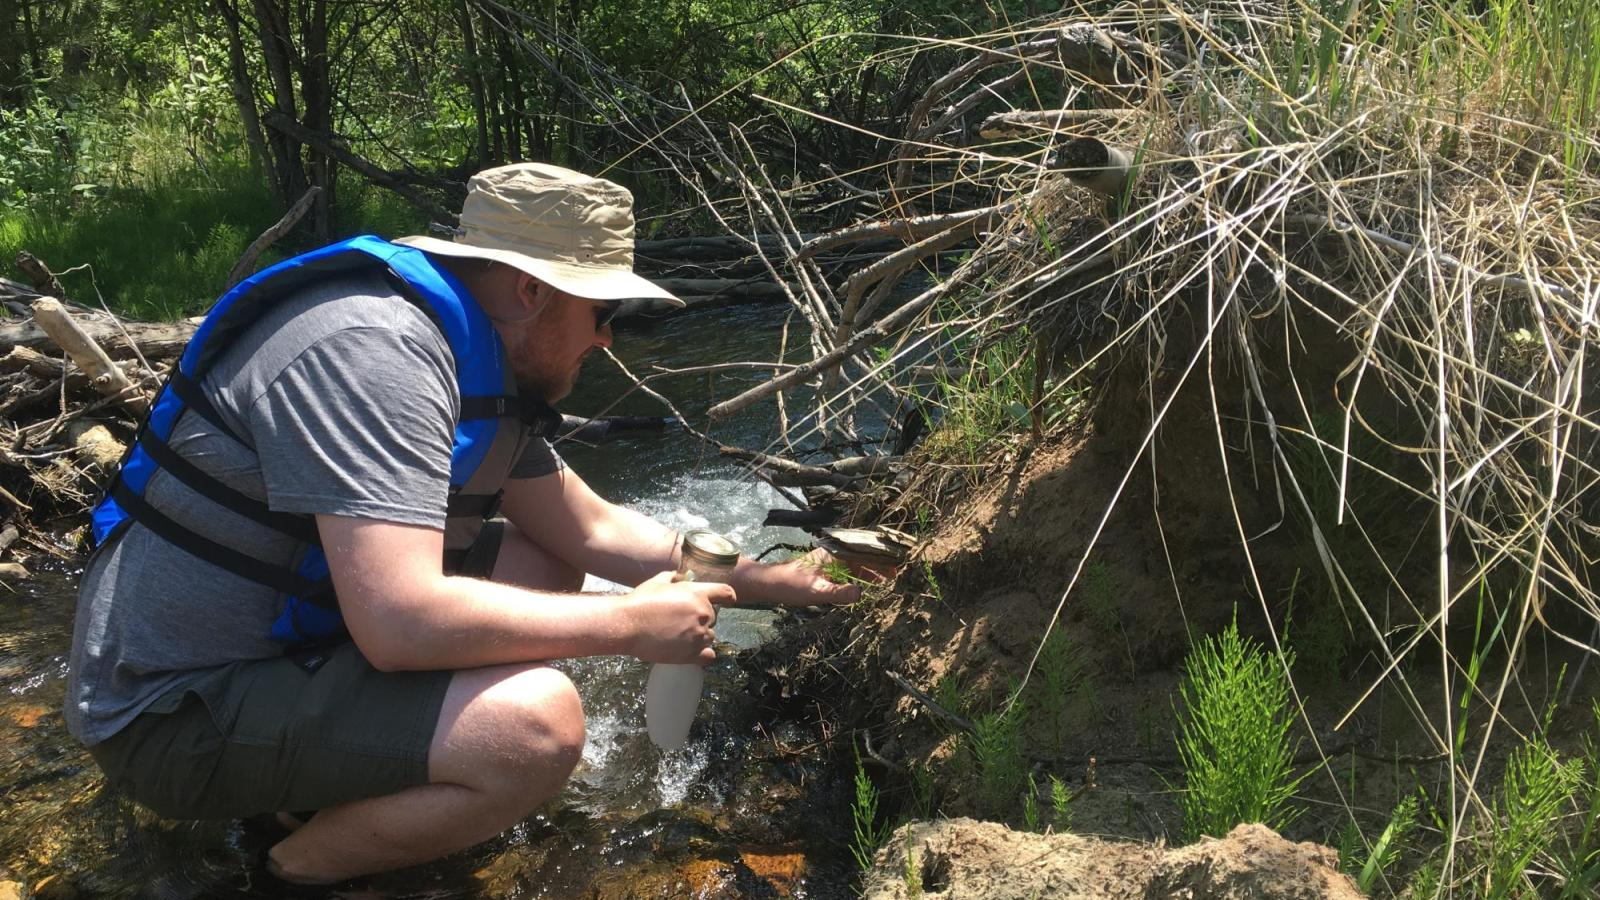 Researcher taking water sample in creek